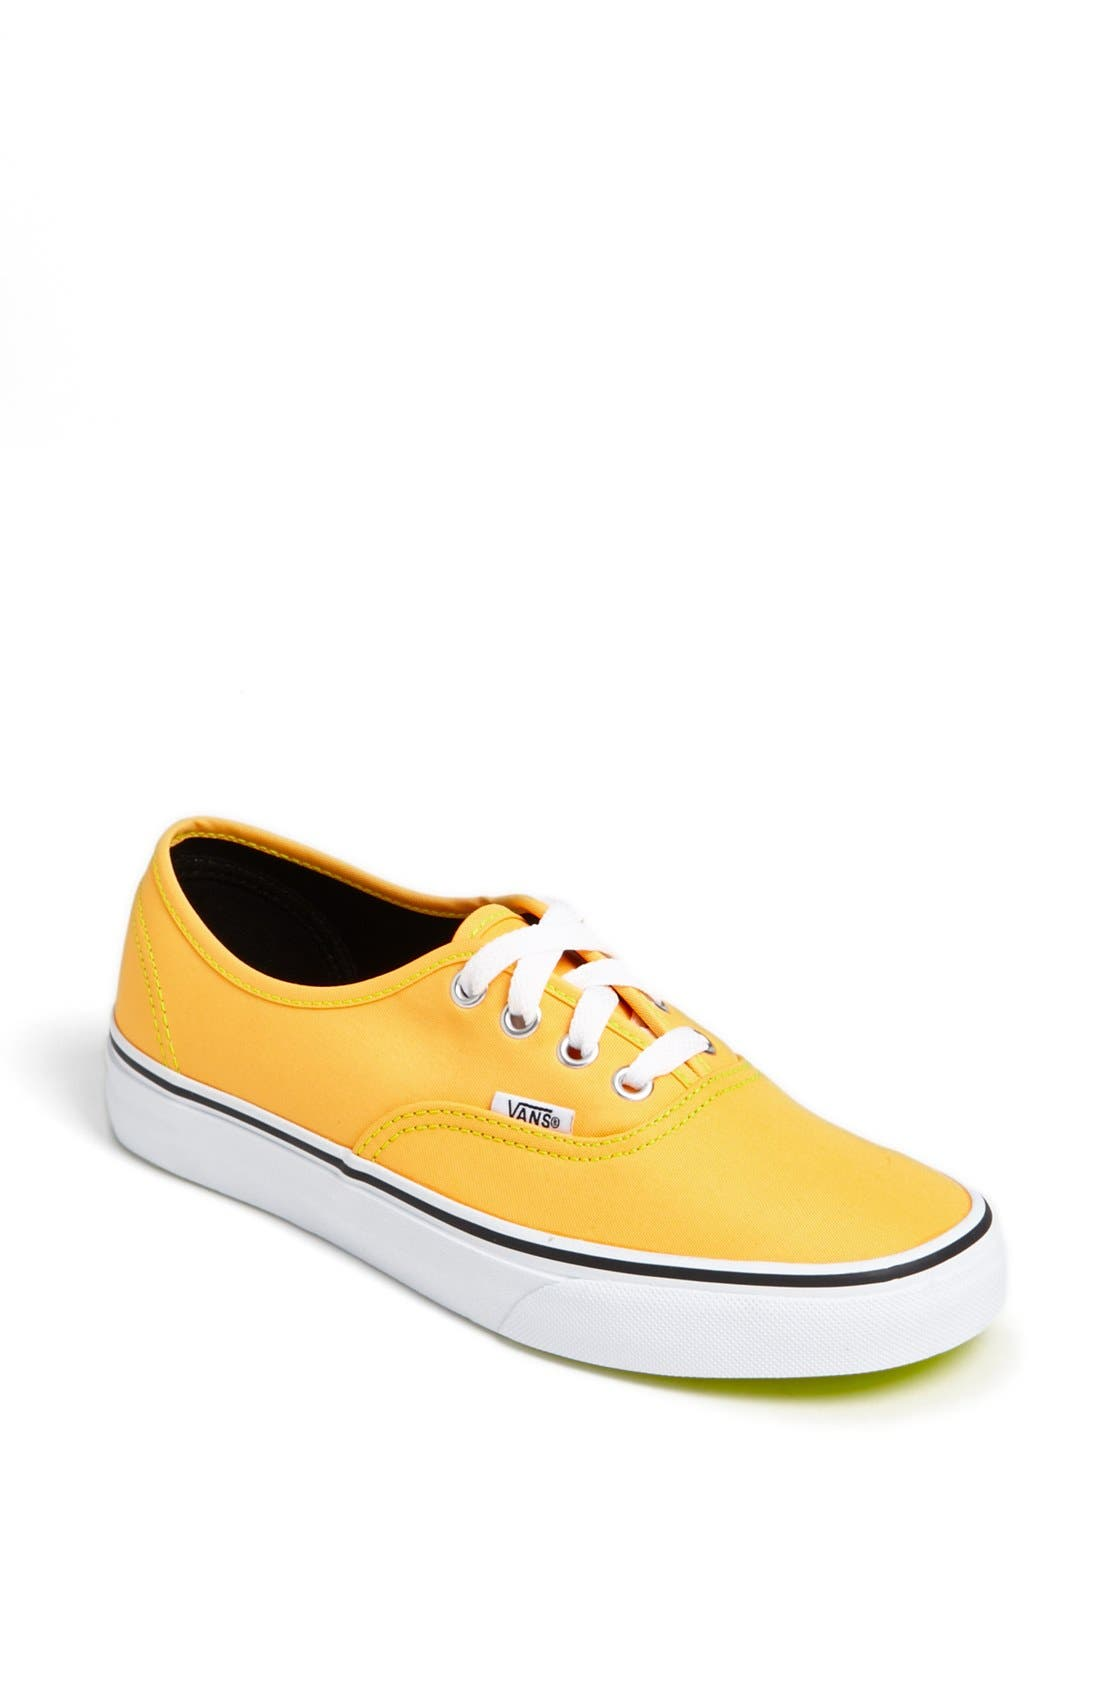 Alternate Image 1 Selected - Vans 'Authentic' Neon Sneaker (Women)